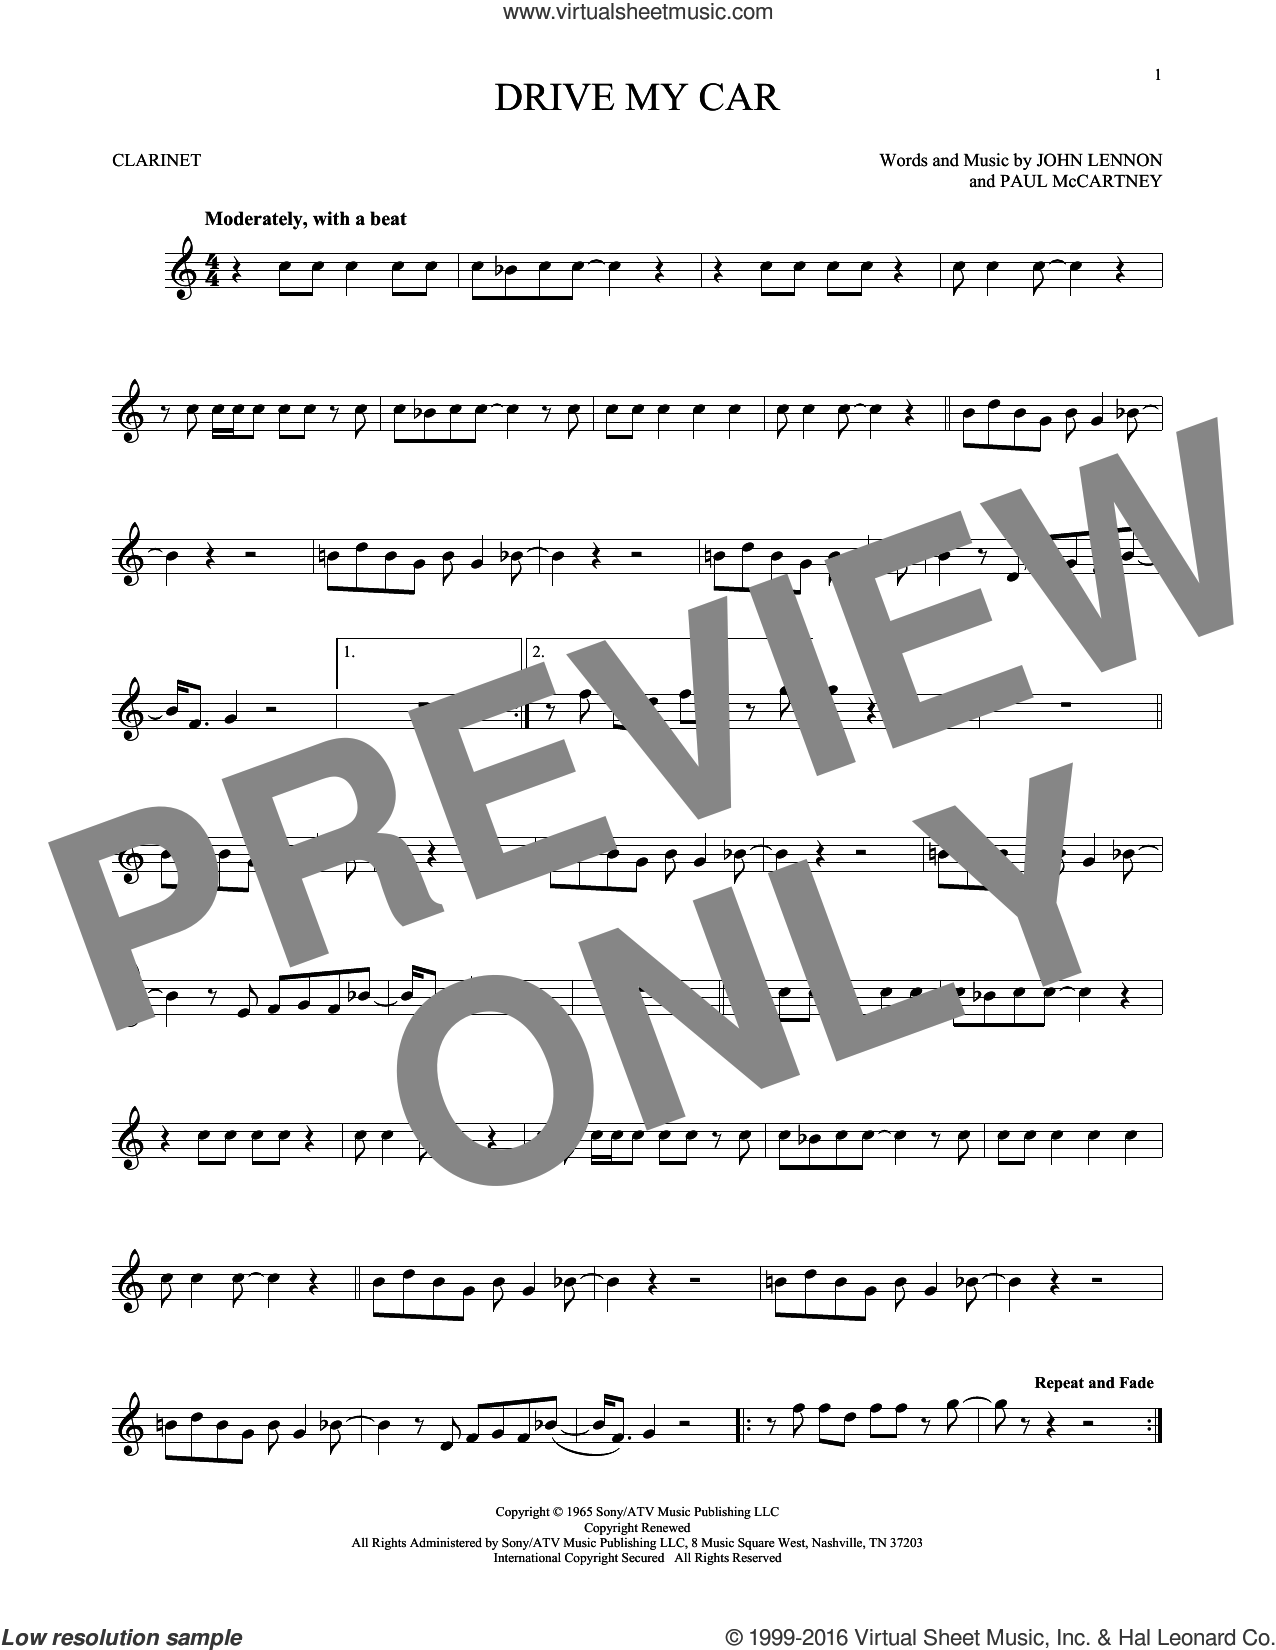 Drive My Car sheet music for clarinet solo by The Beatles, John Lennon and Paul McCartney, intermediate skill level